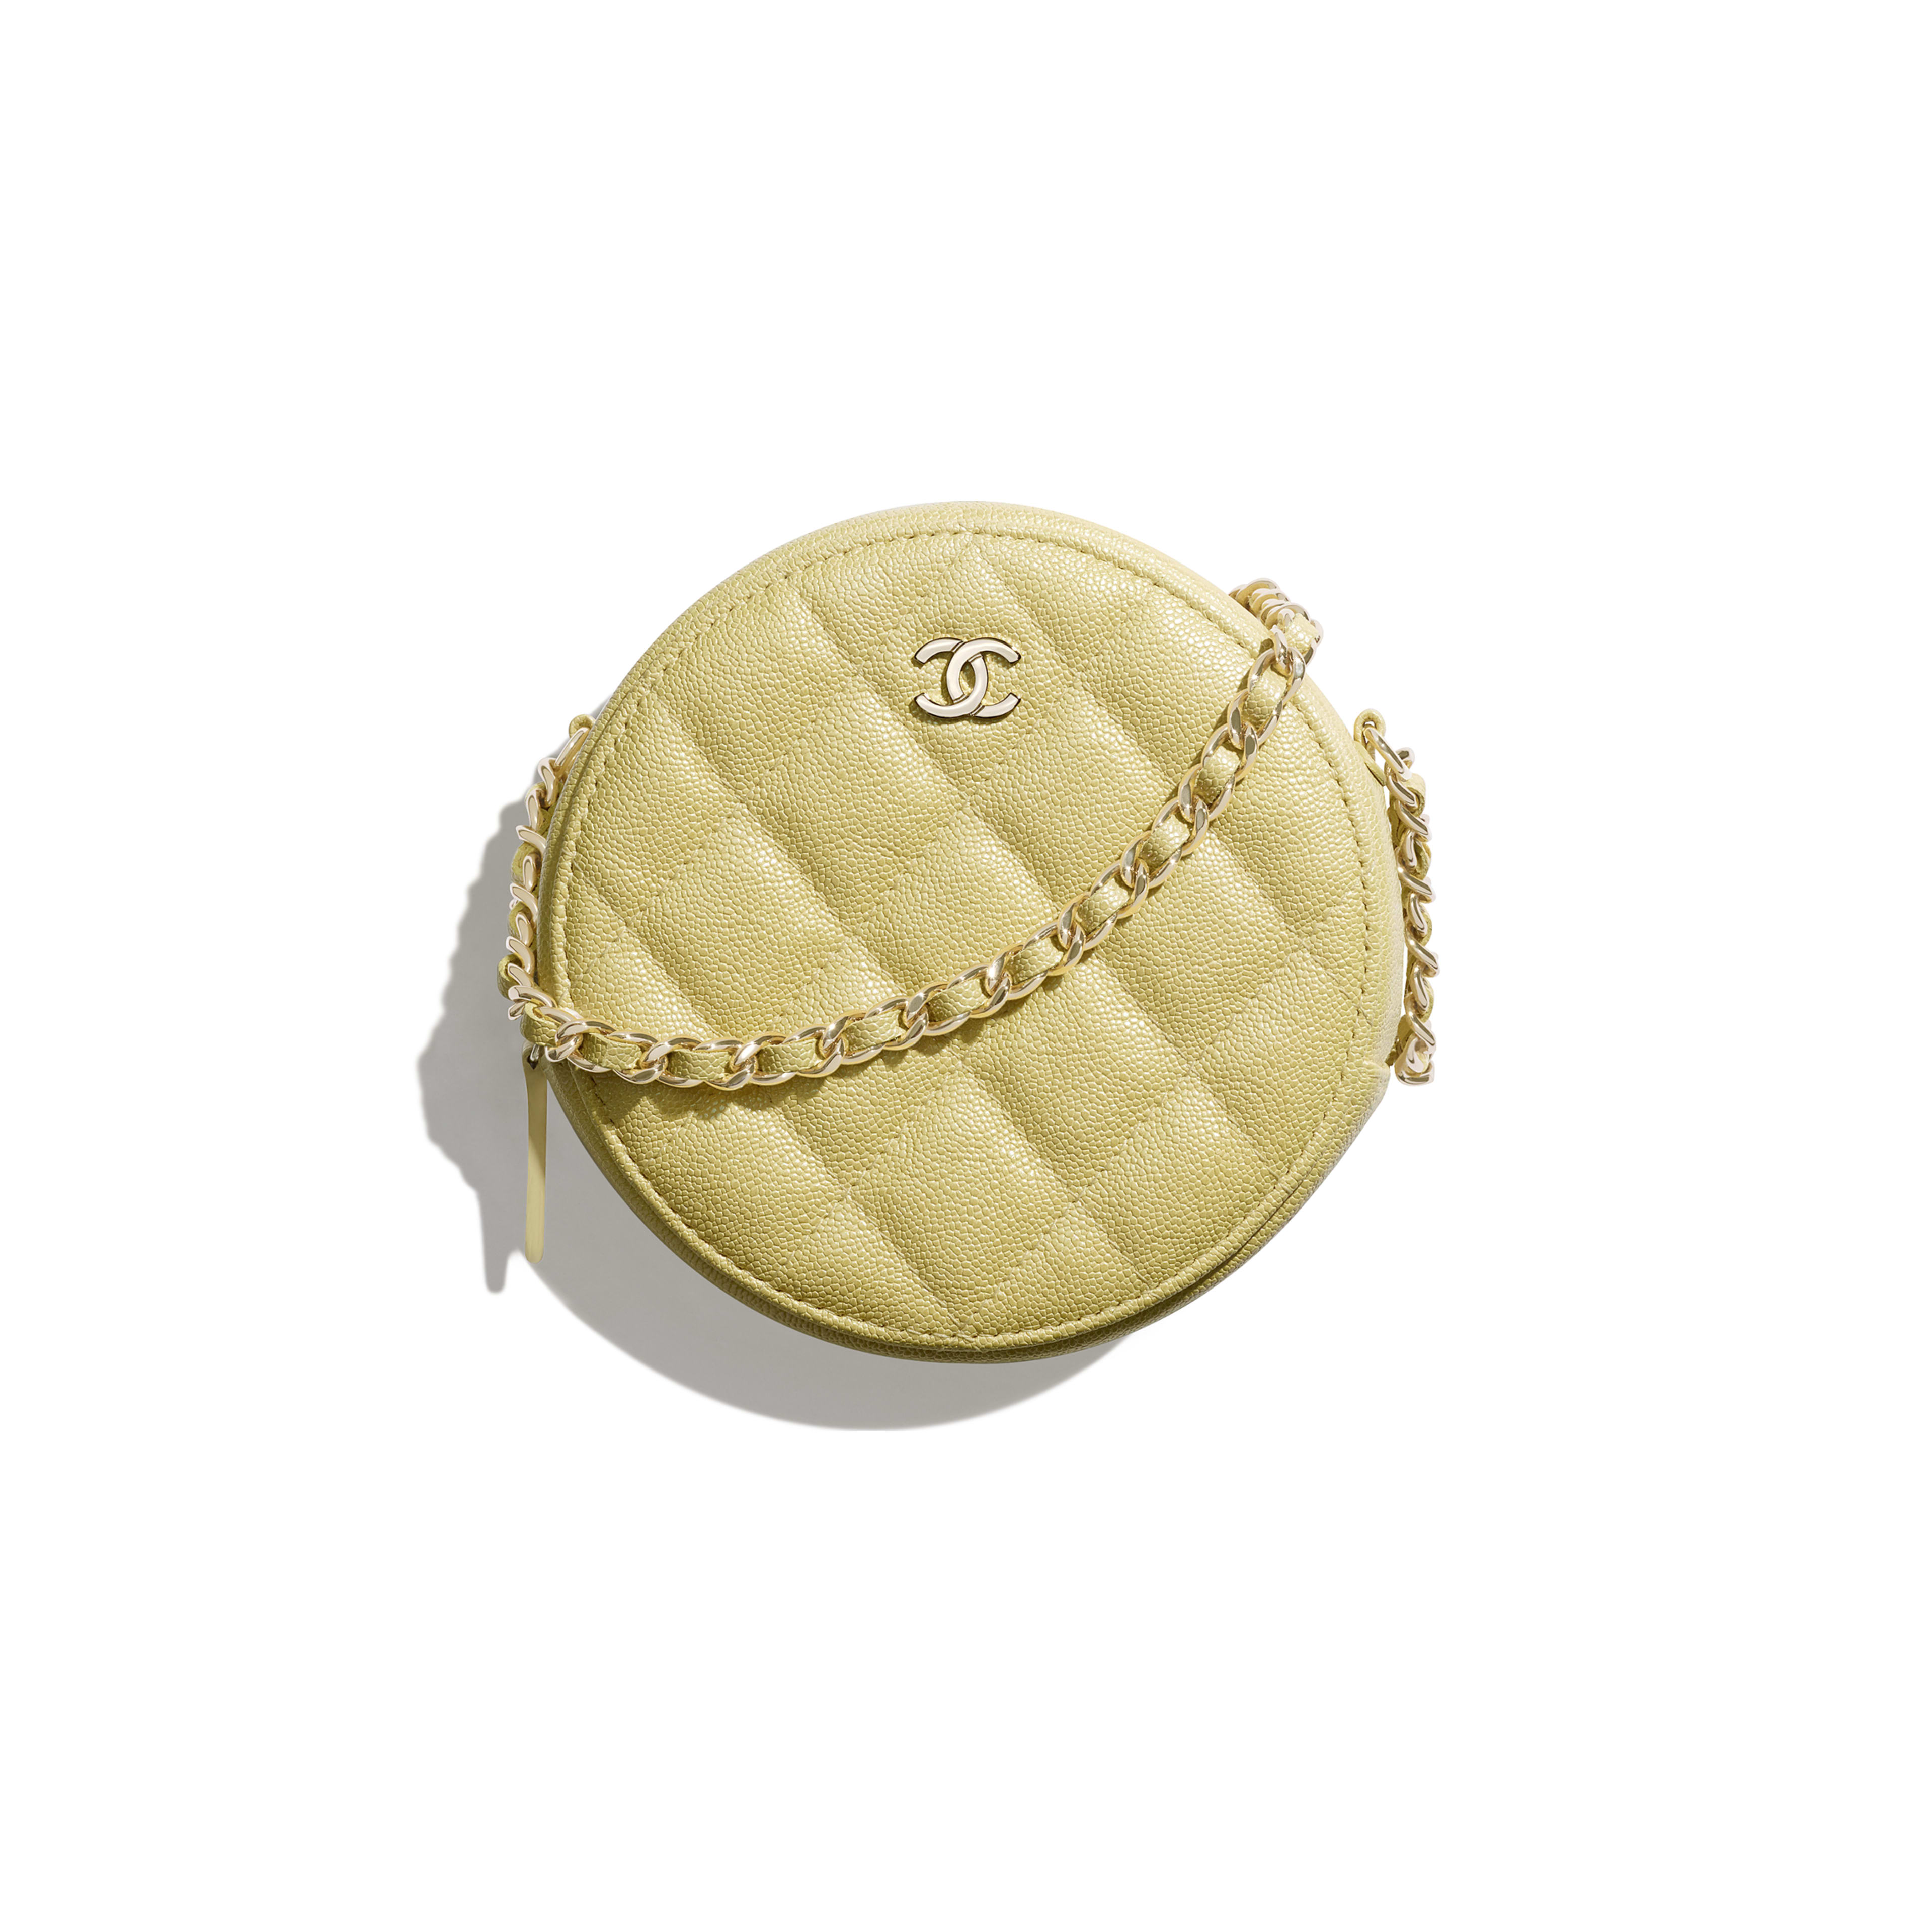 Classic Clutch with Chain - Yellow - Iridescent Grained Calfskin & Gold-Tone Metal - Default view - see full sized version